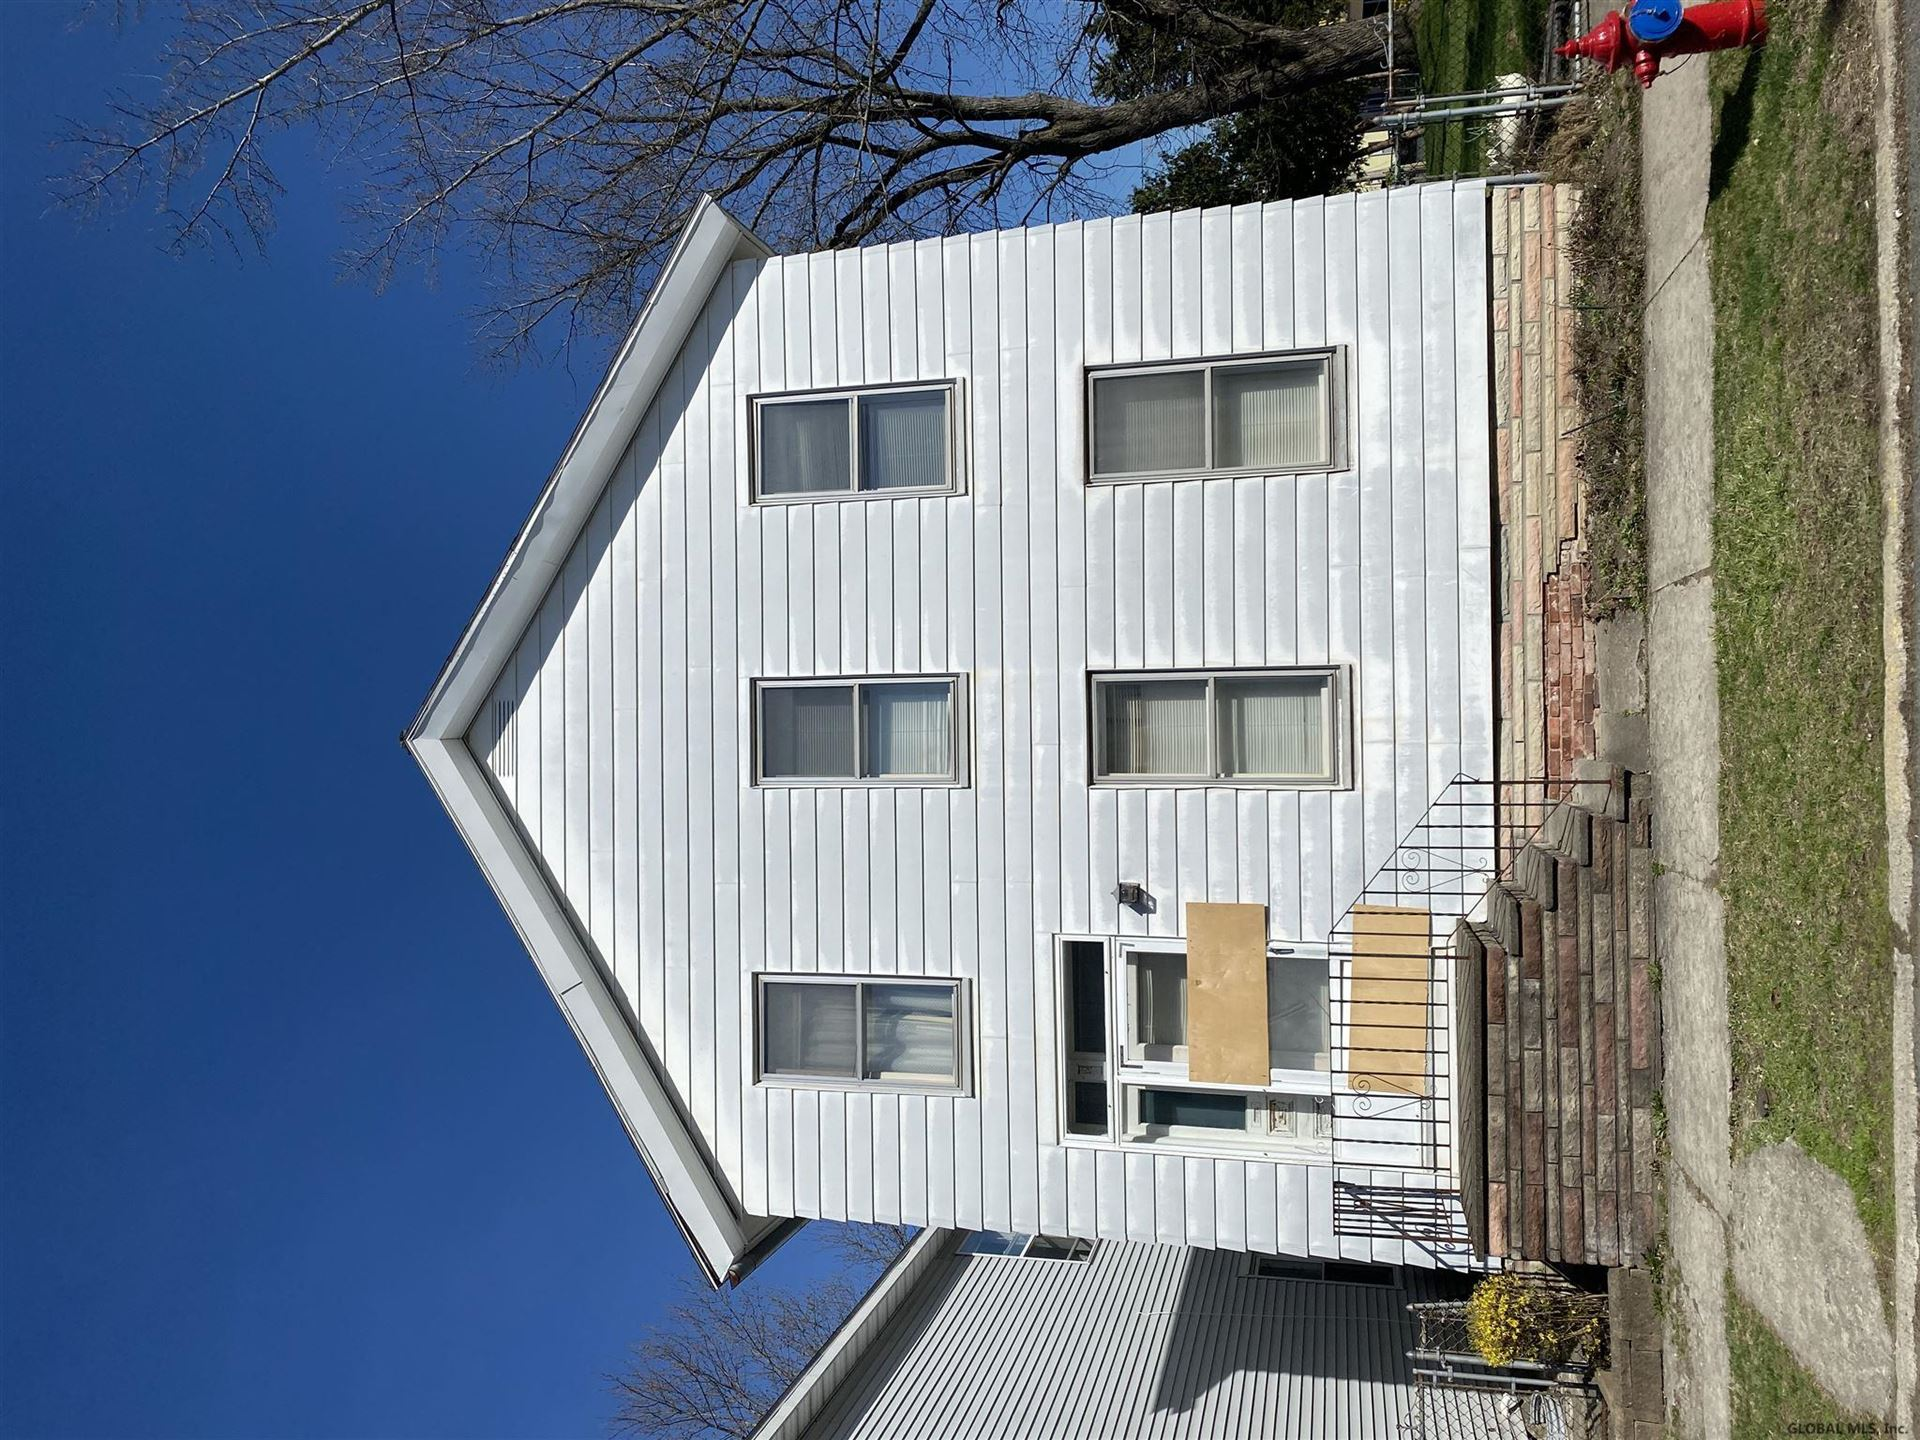 1502 7TH AV, Watervliet, NY 12189 - #: 202115503